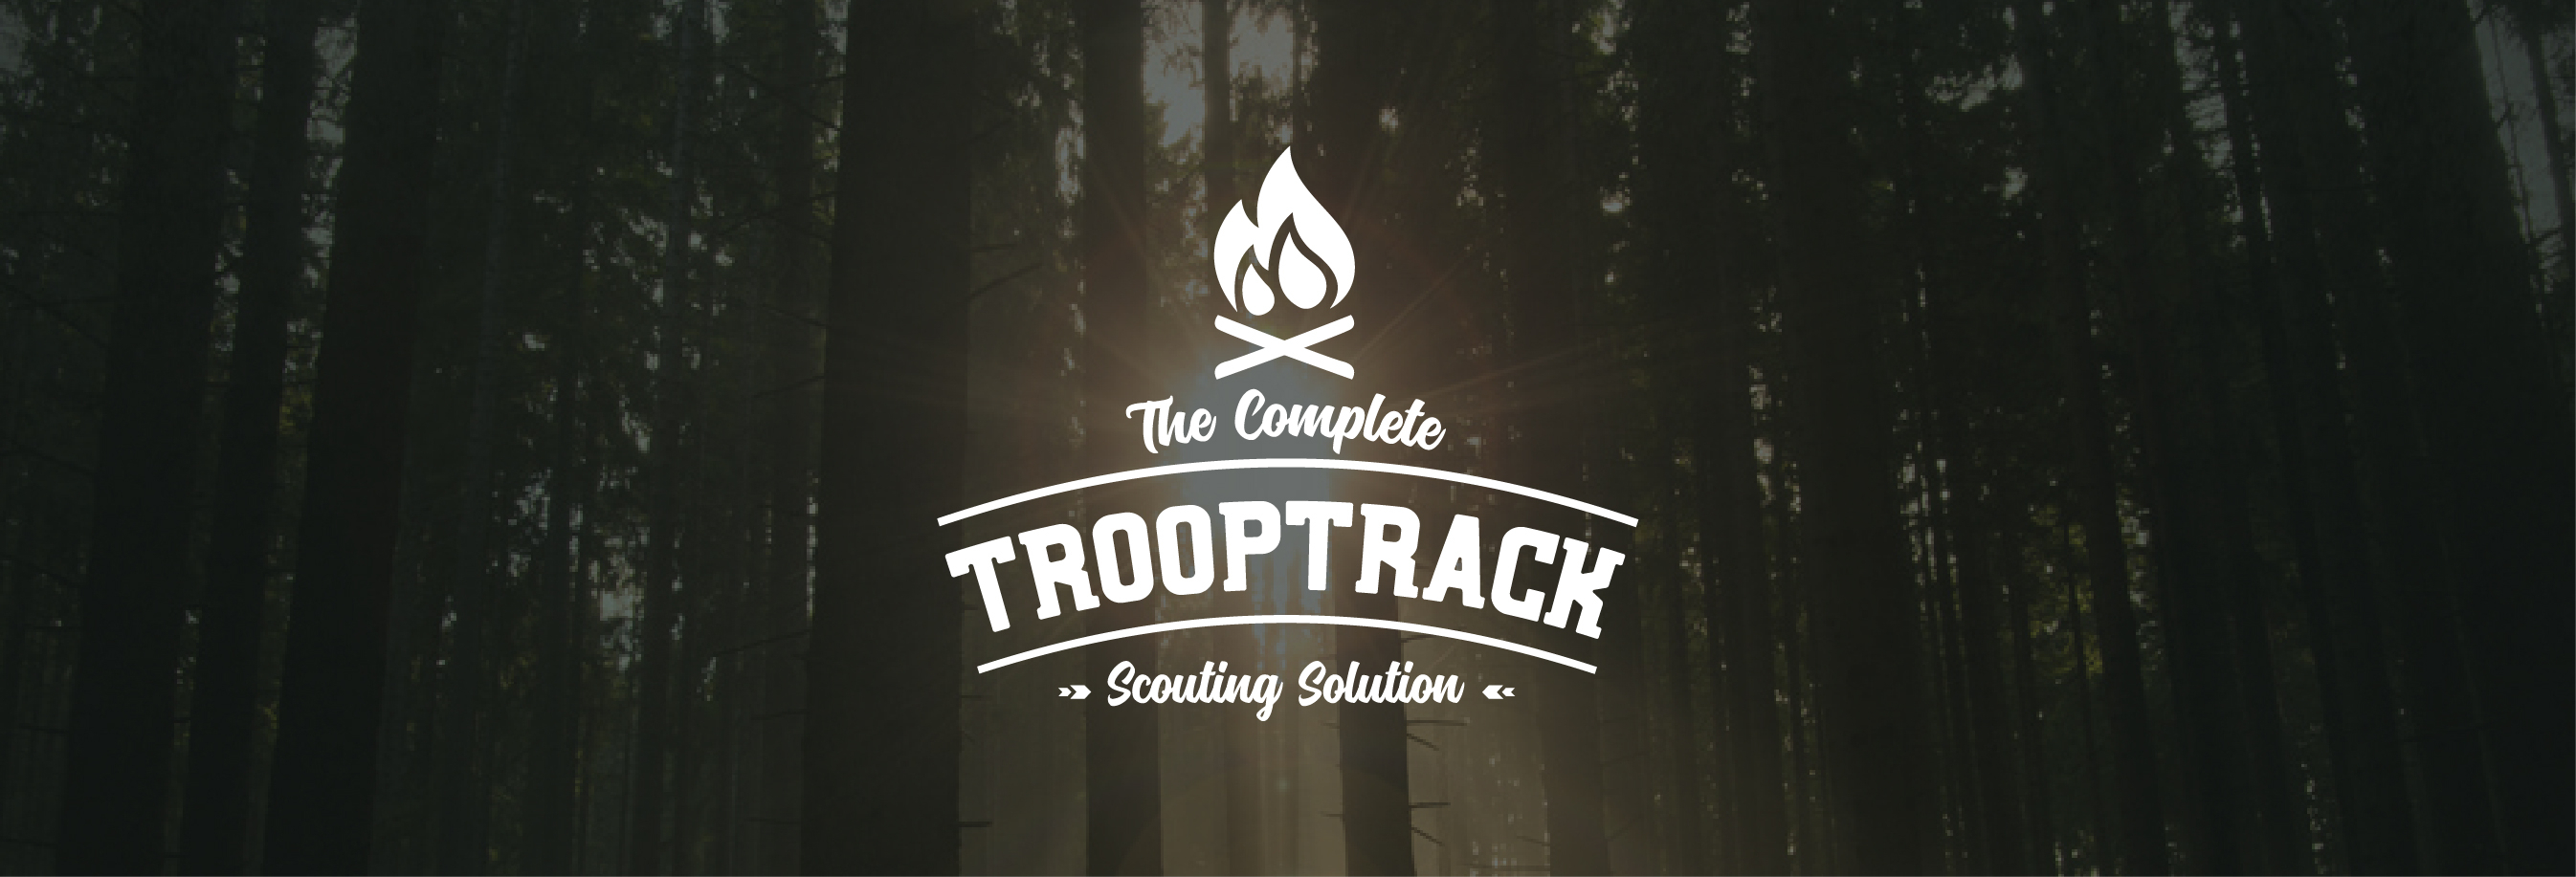 Girl Scout Troop Finance Spreadsheet Intended For Trooptrack